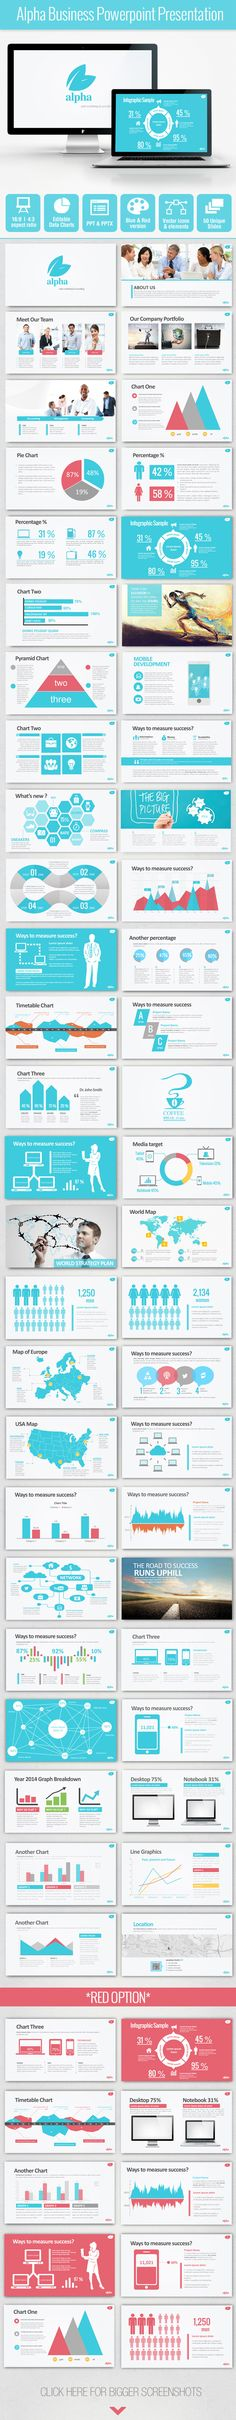 Alpha Business Powerpoint Presentation Get a modern Powerpoint Presentation that is beautifully designed and functional. Everything in the presentation is inserted as vector objects and can be broken apart and recolored as you like.Vectors are better cause it scales and prints better, and can't become pixelated.This presentation is very easy to edit, change fonts, colors and images. I hope my hard work will save you time and money.If there are any questions, please feel free to contact me.